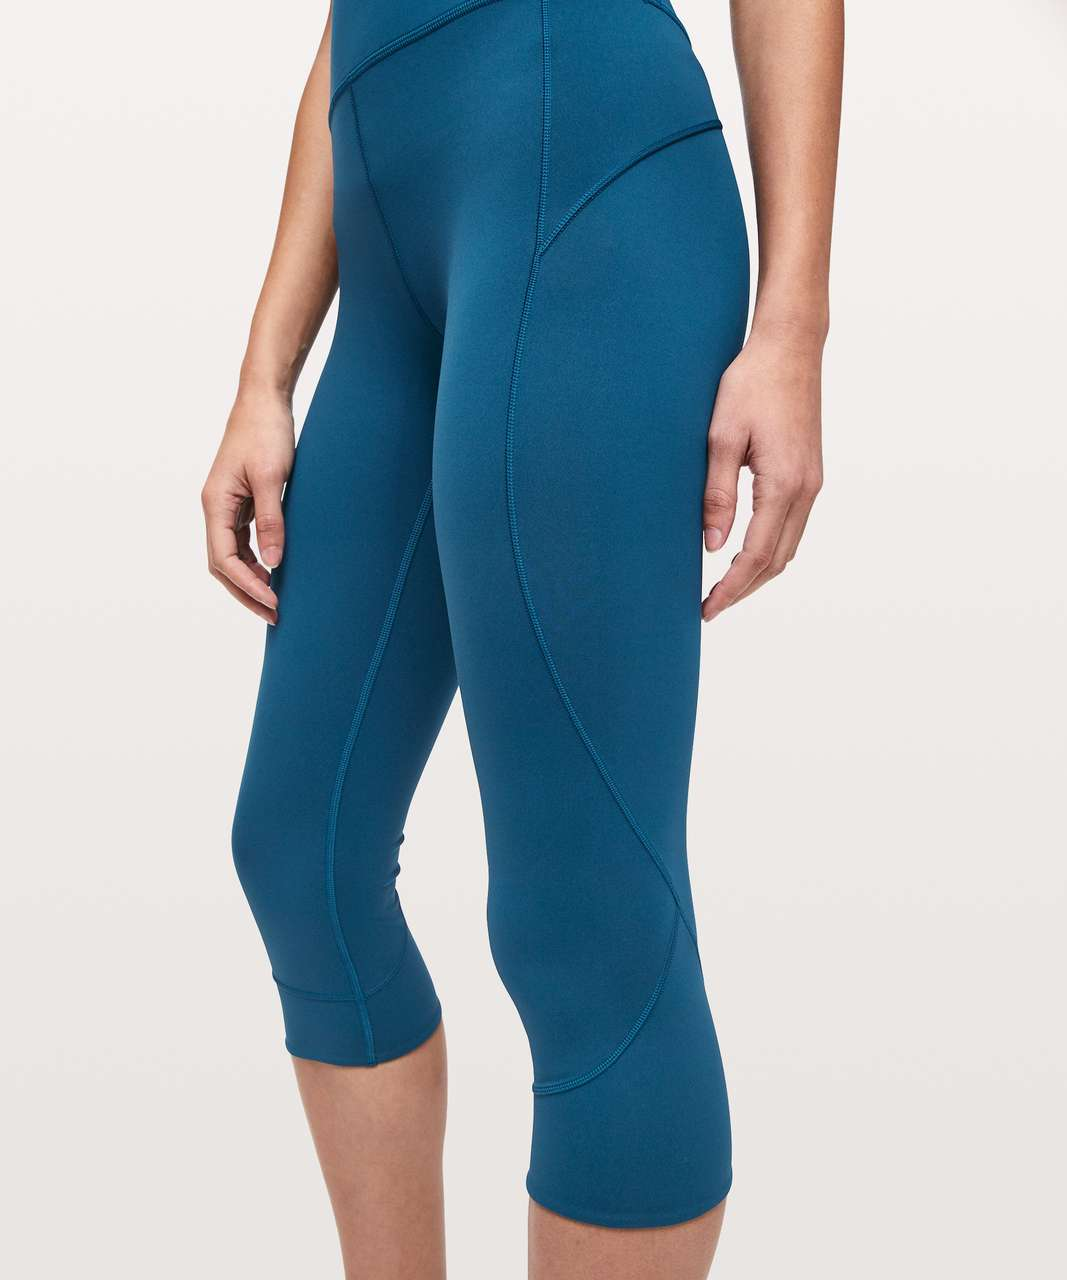 "Lululemon In Movement Crop *Everlux 19"" - Deep Marine"